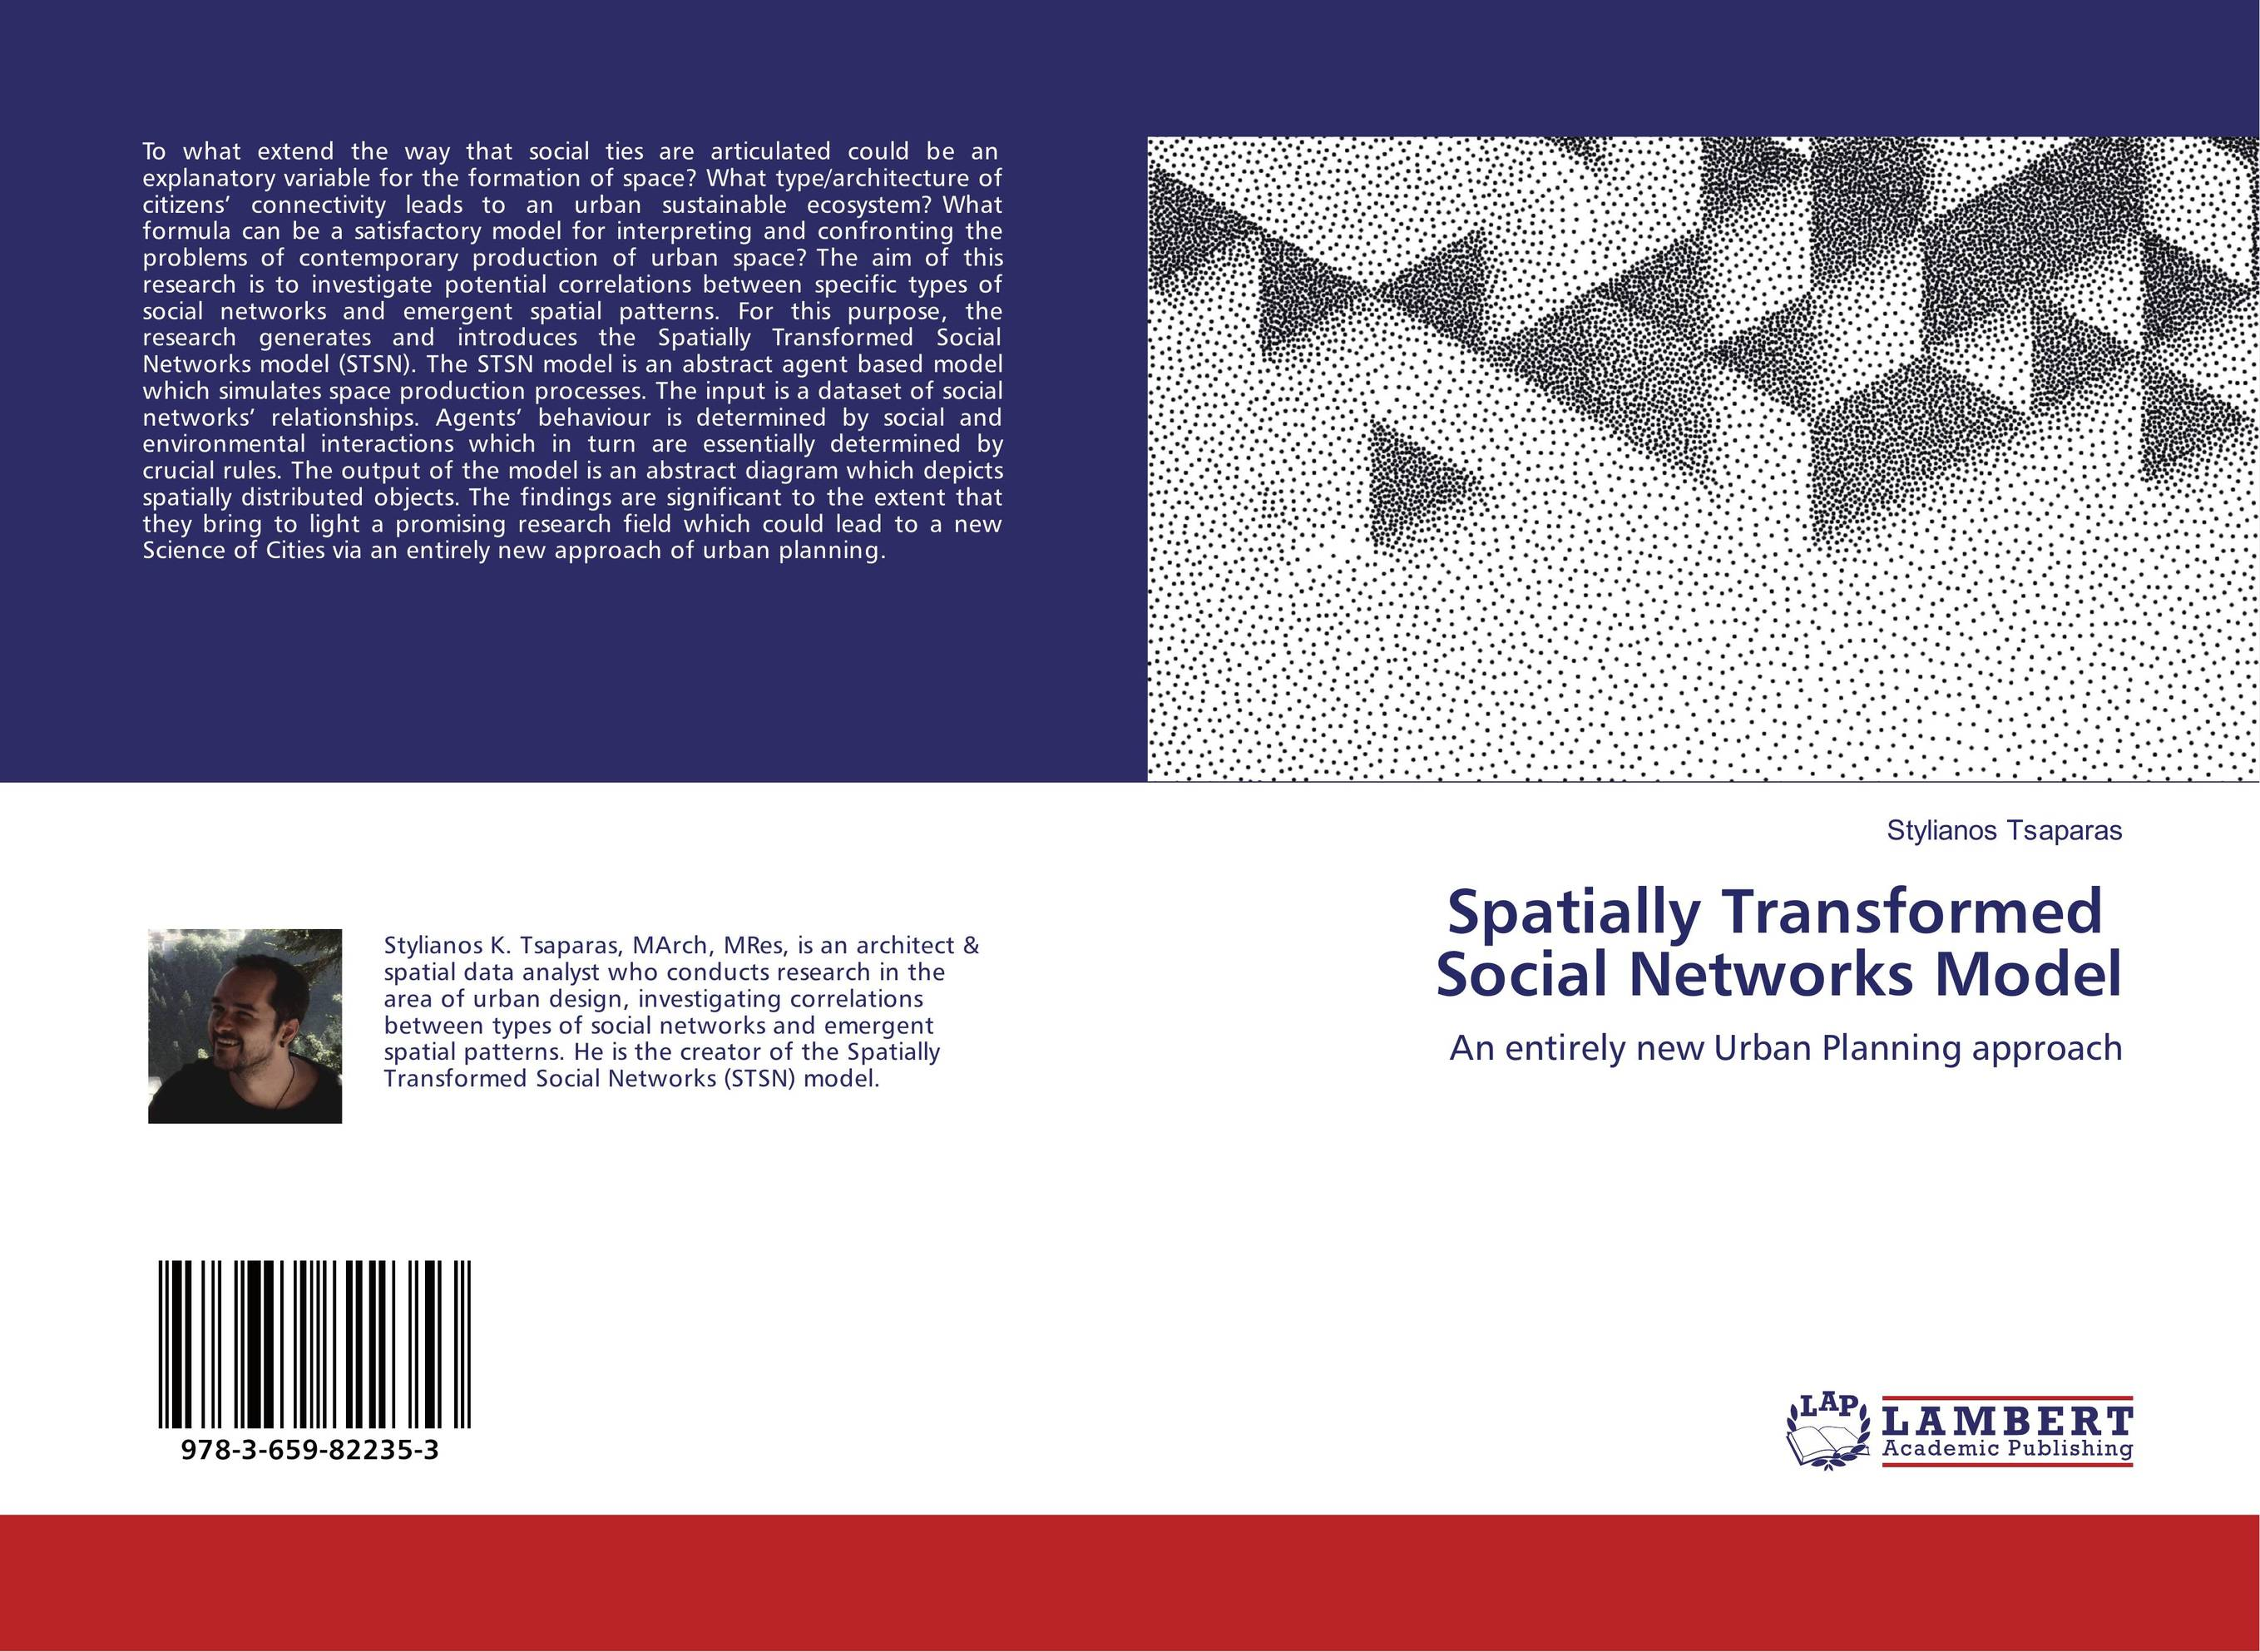 Spatially Transformed Social Networks Model